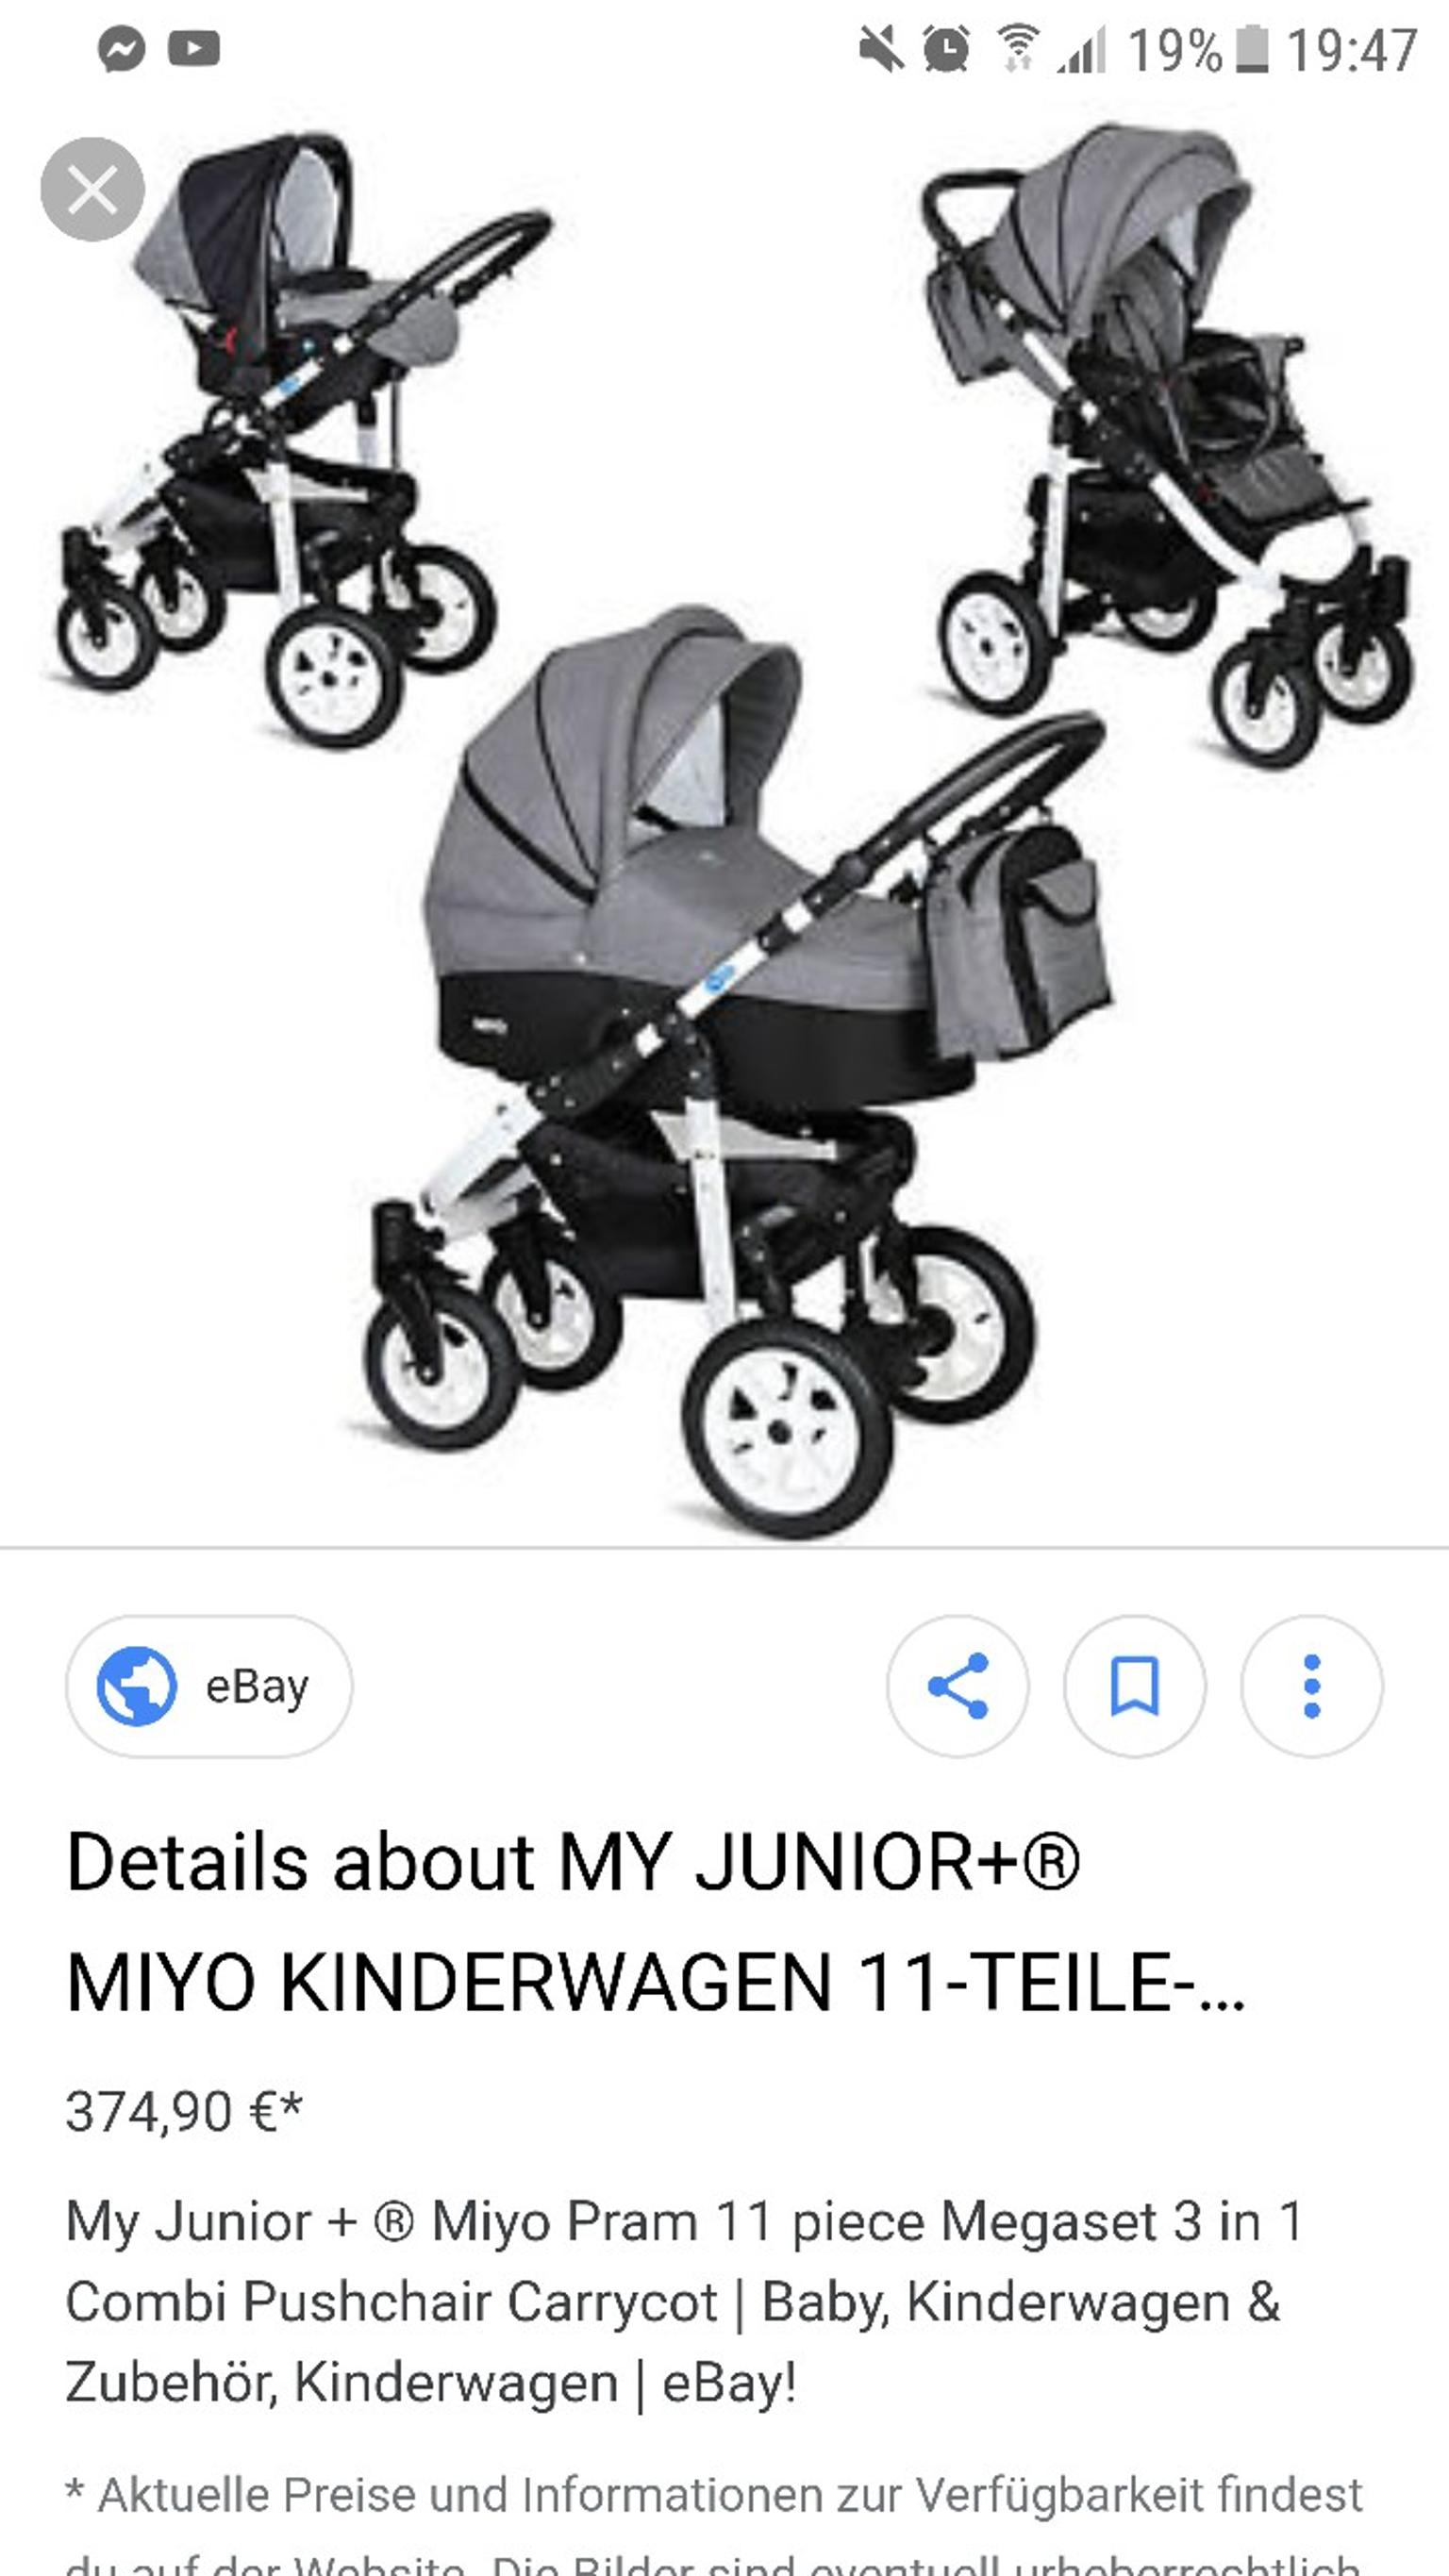 My Junior Miyo Ebay Kombi Kinderwagen 3 In 1